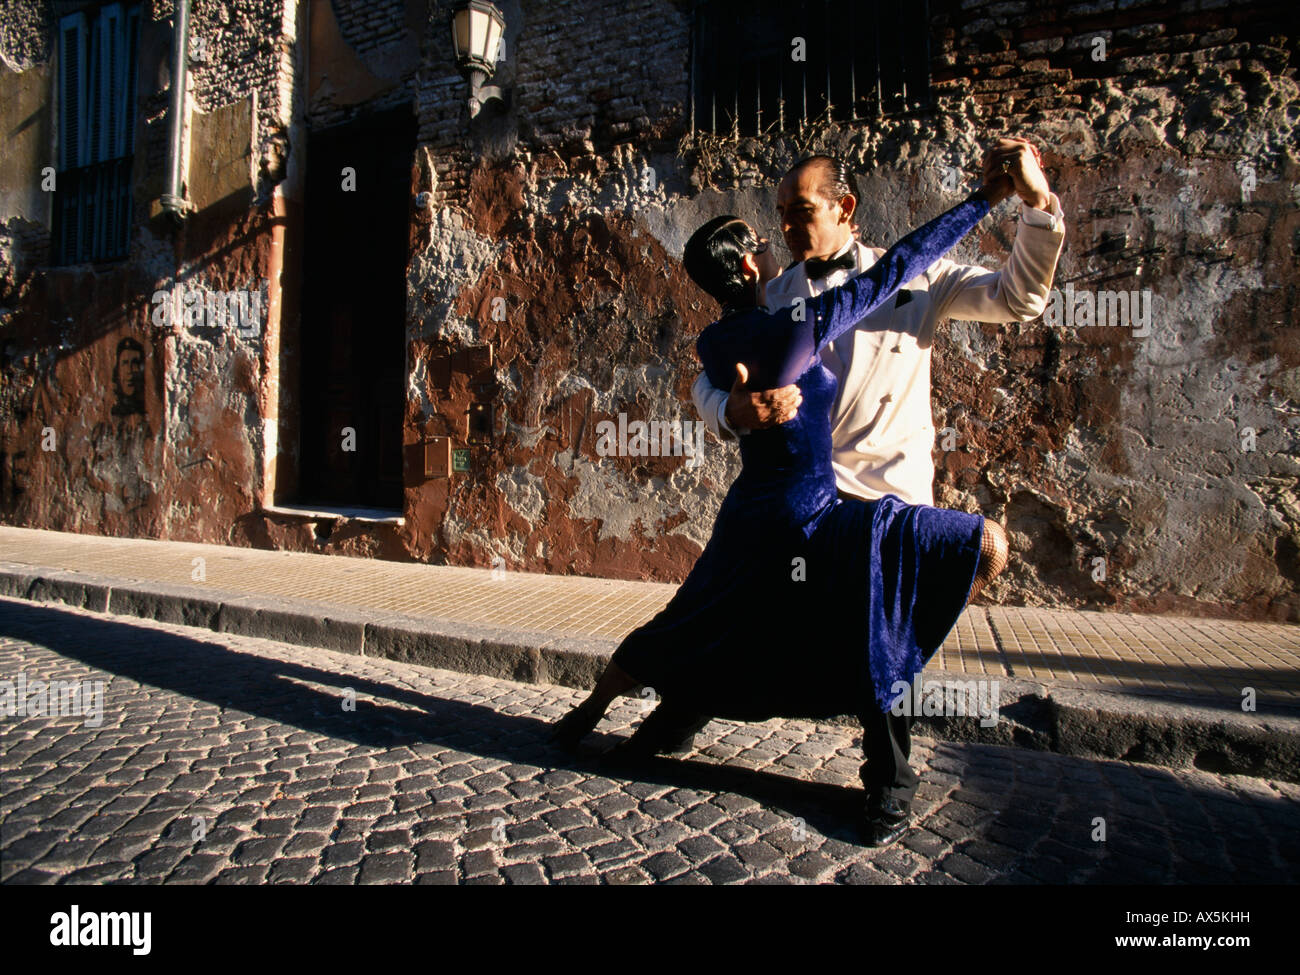 Pair dancing the tango in Buenos Aires, Argentina, South America - Stock Image